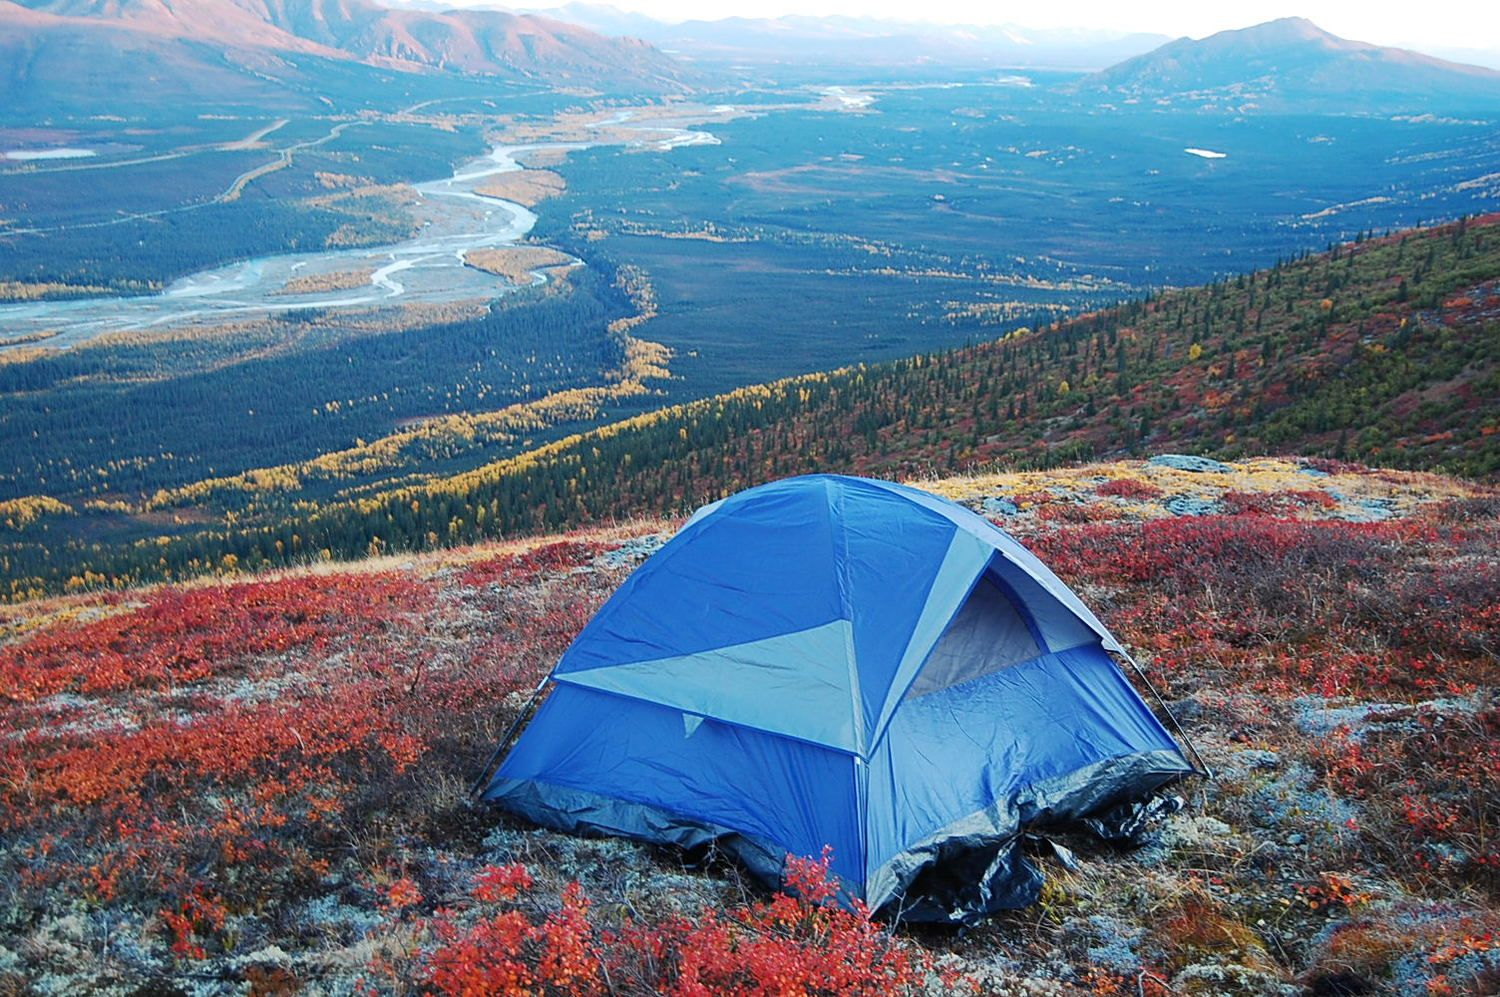 Coldfoot Camp - Loding in Coldfoot, AK where you can hike into Gates of the Arctic by highway